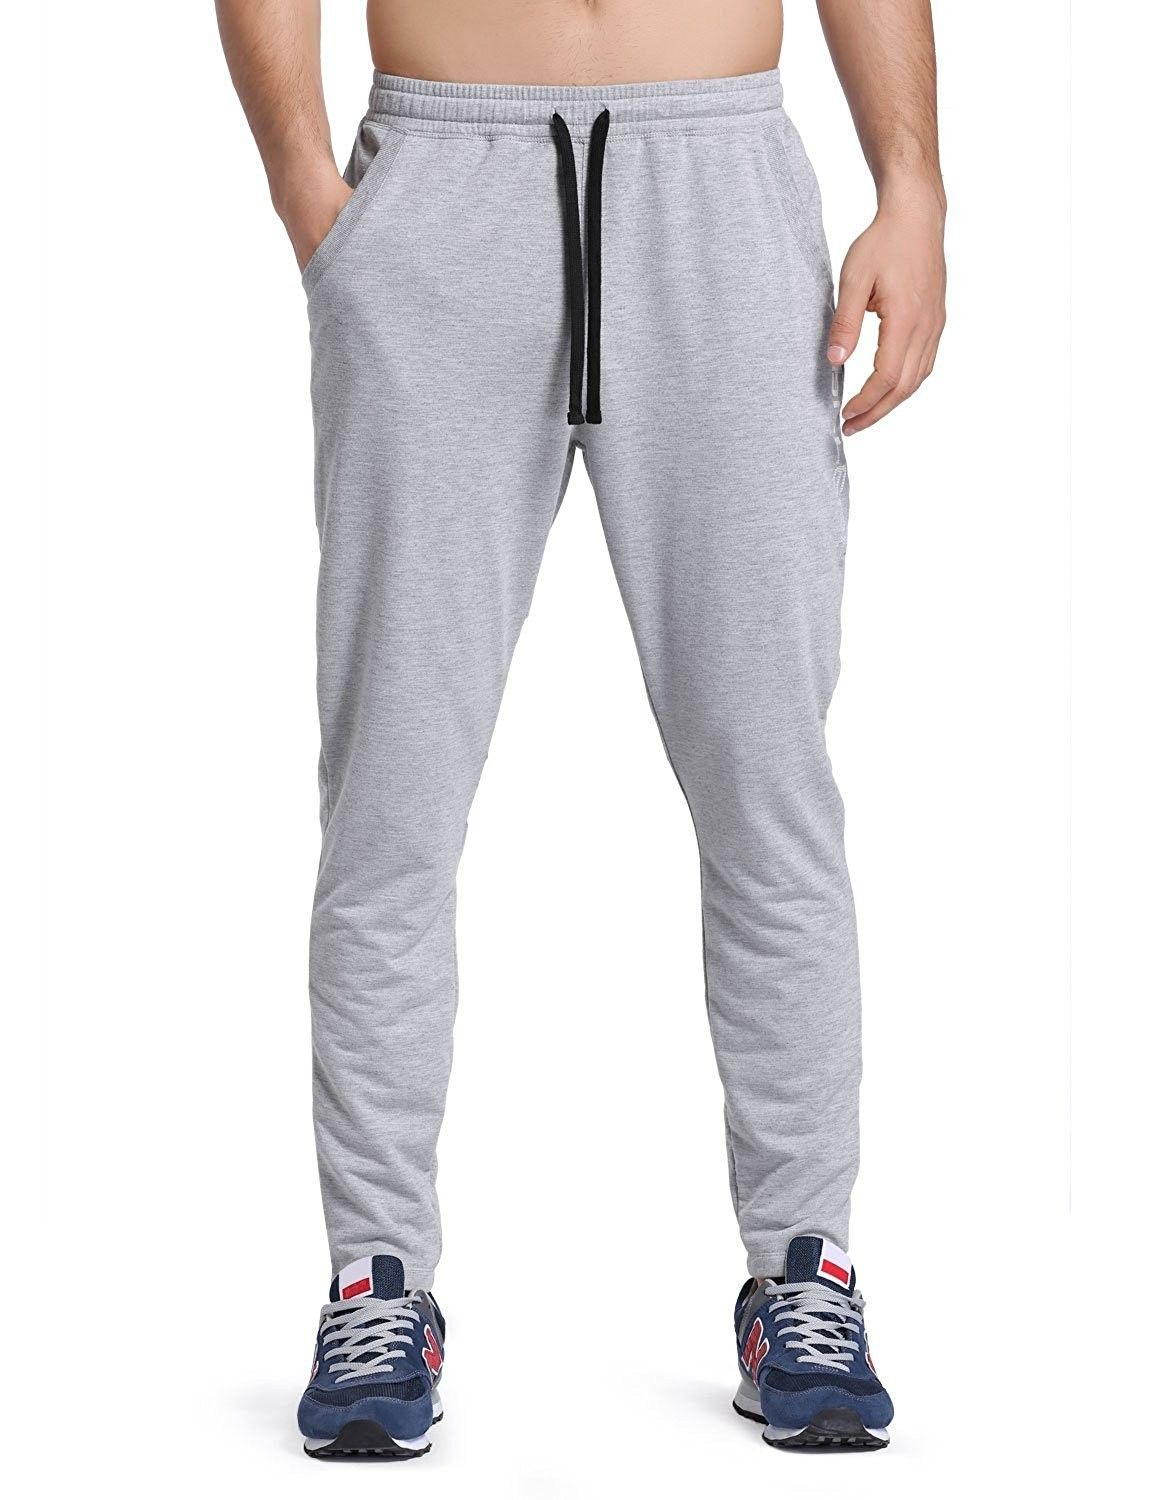 Men's Clothing, Active, Active Pants, Men's Tapered Athletic Running Pants  - Light Gray - C212NA… | Mens athletic pants, Mens workout clothes,  Weightlifting clothes